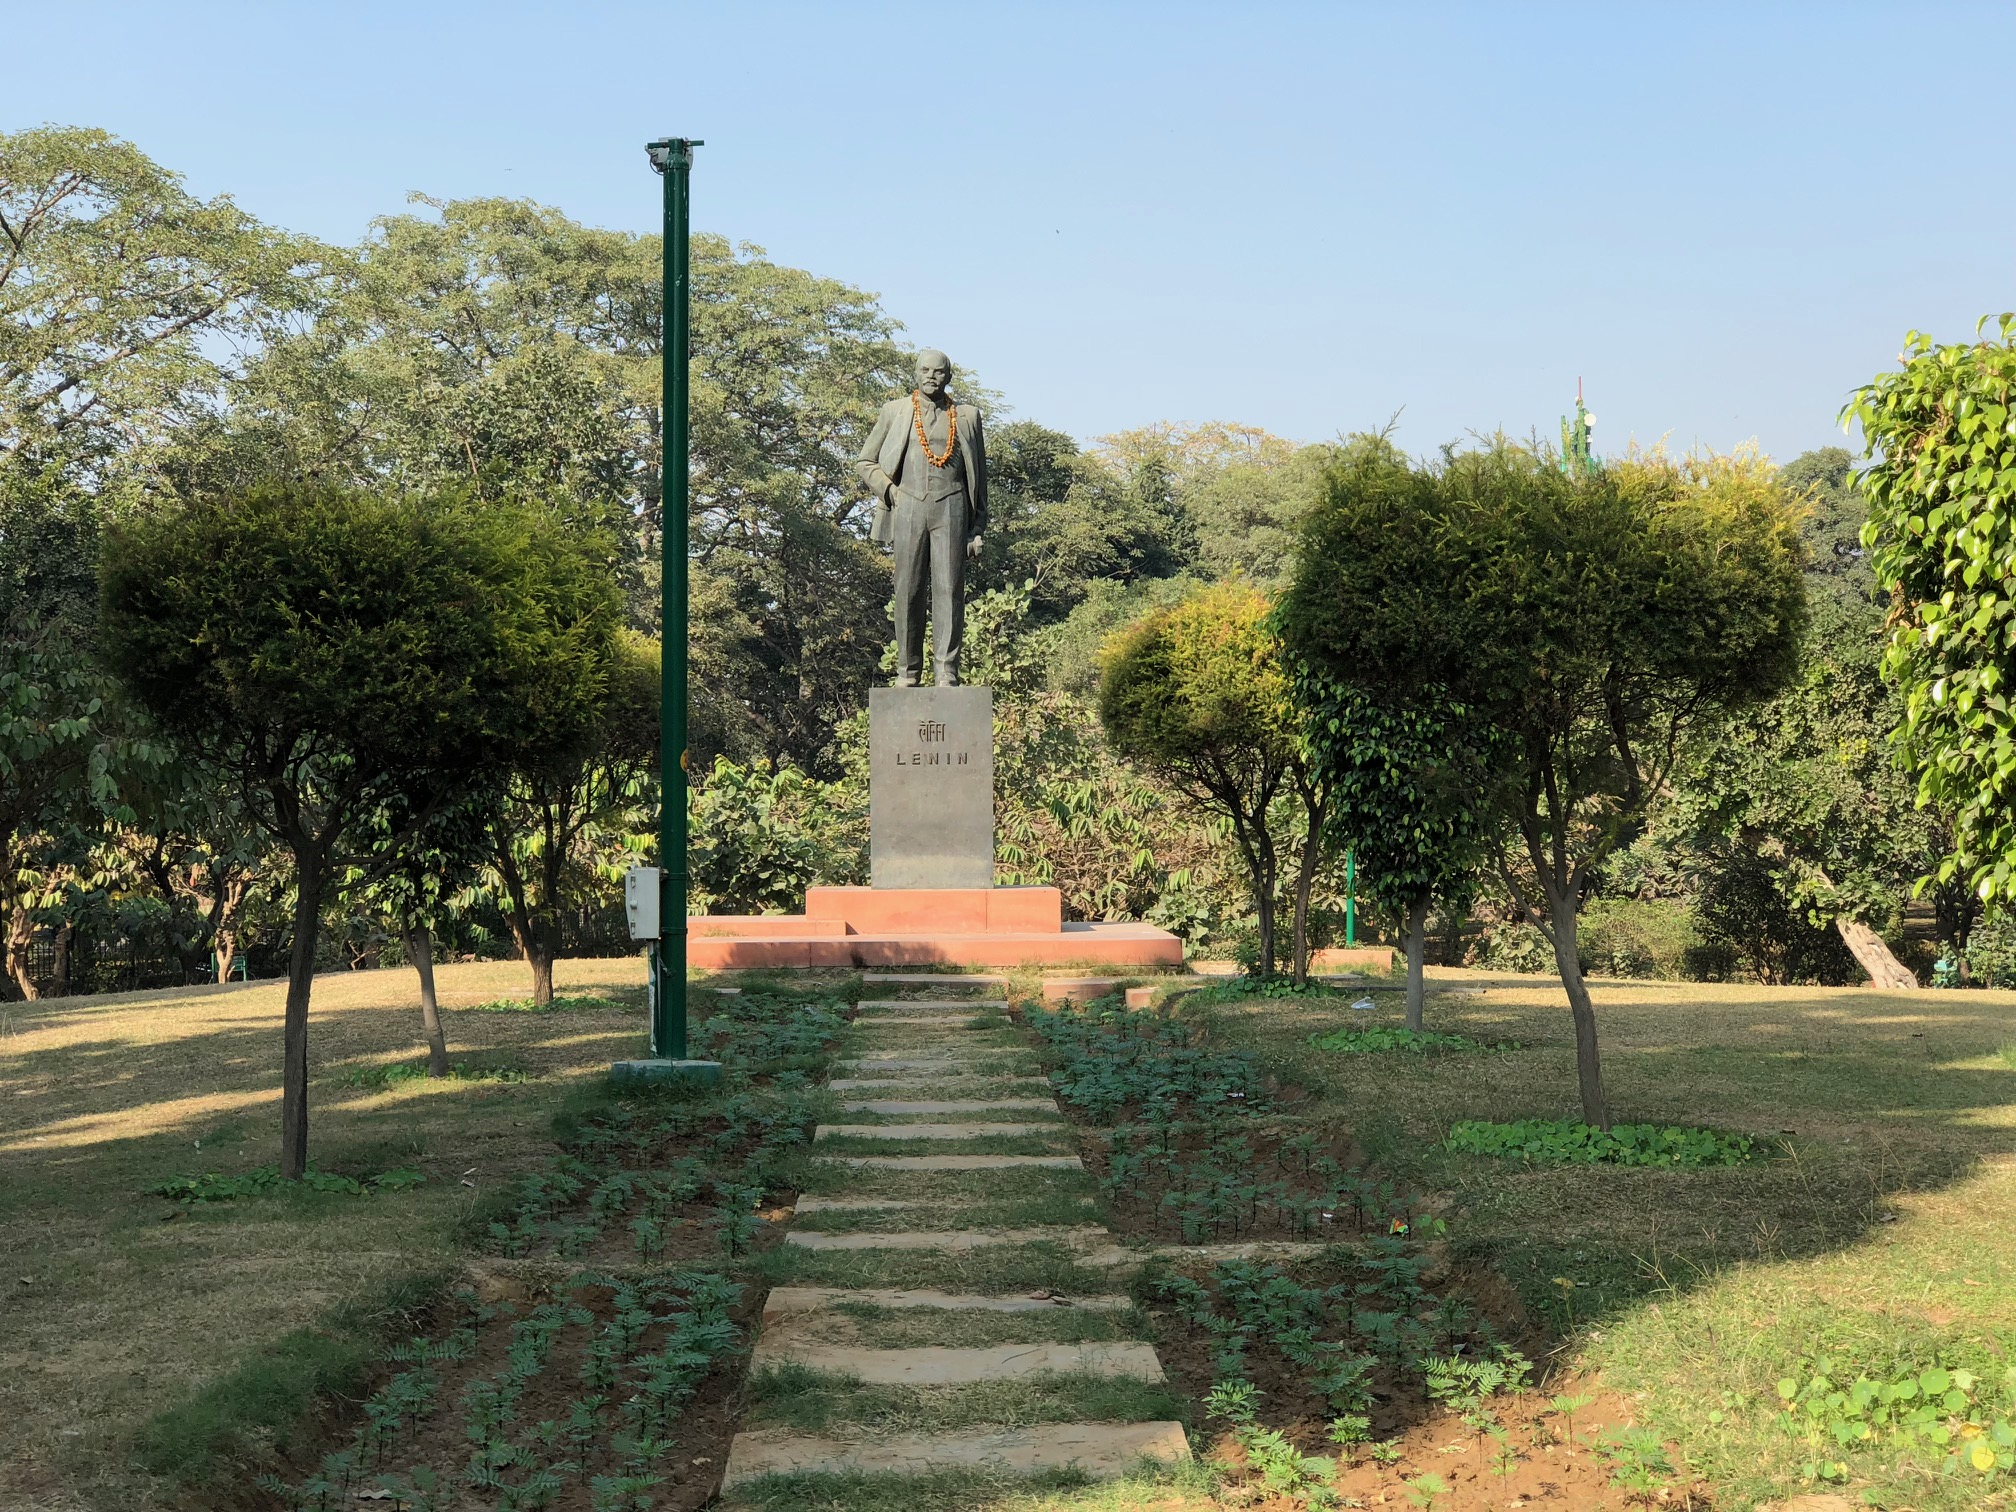 City Landmark - Lenin's Tomb, Nehru Park